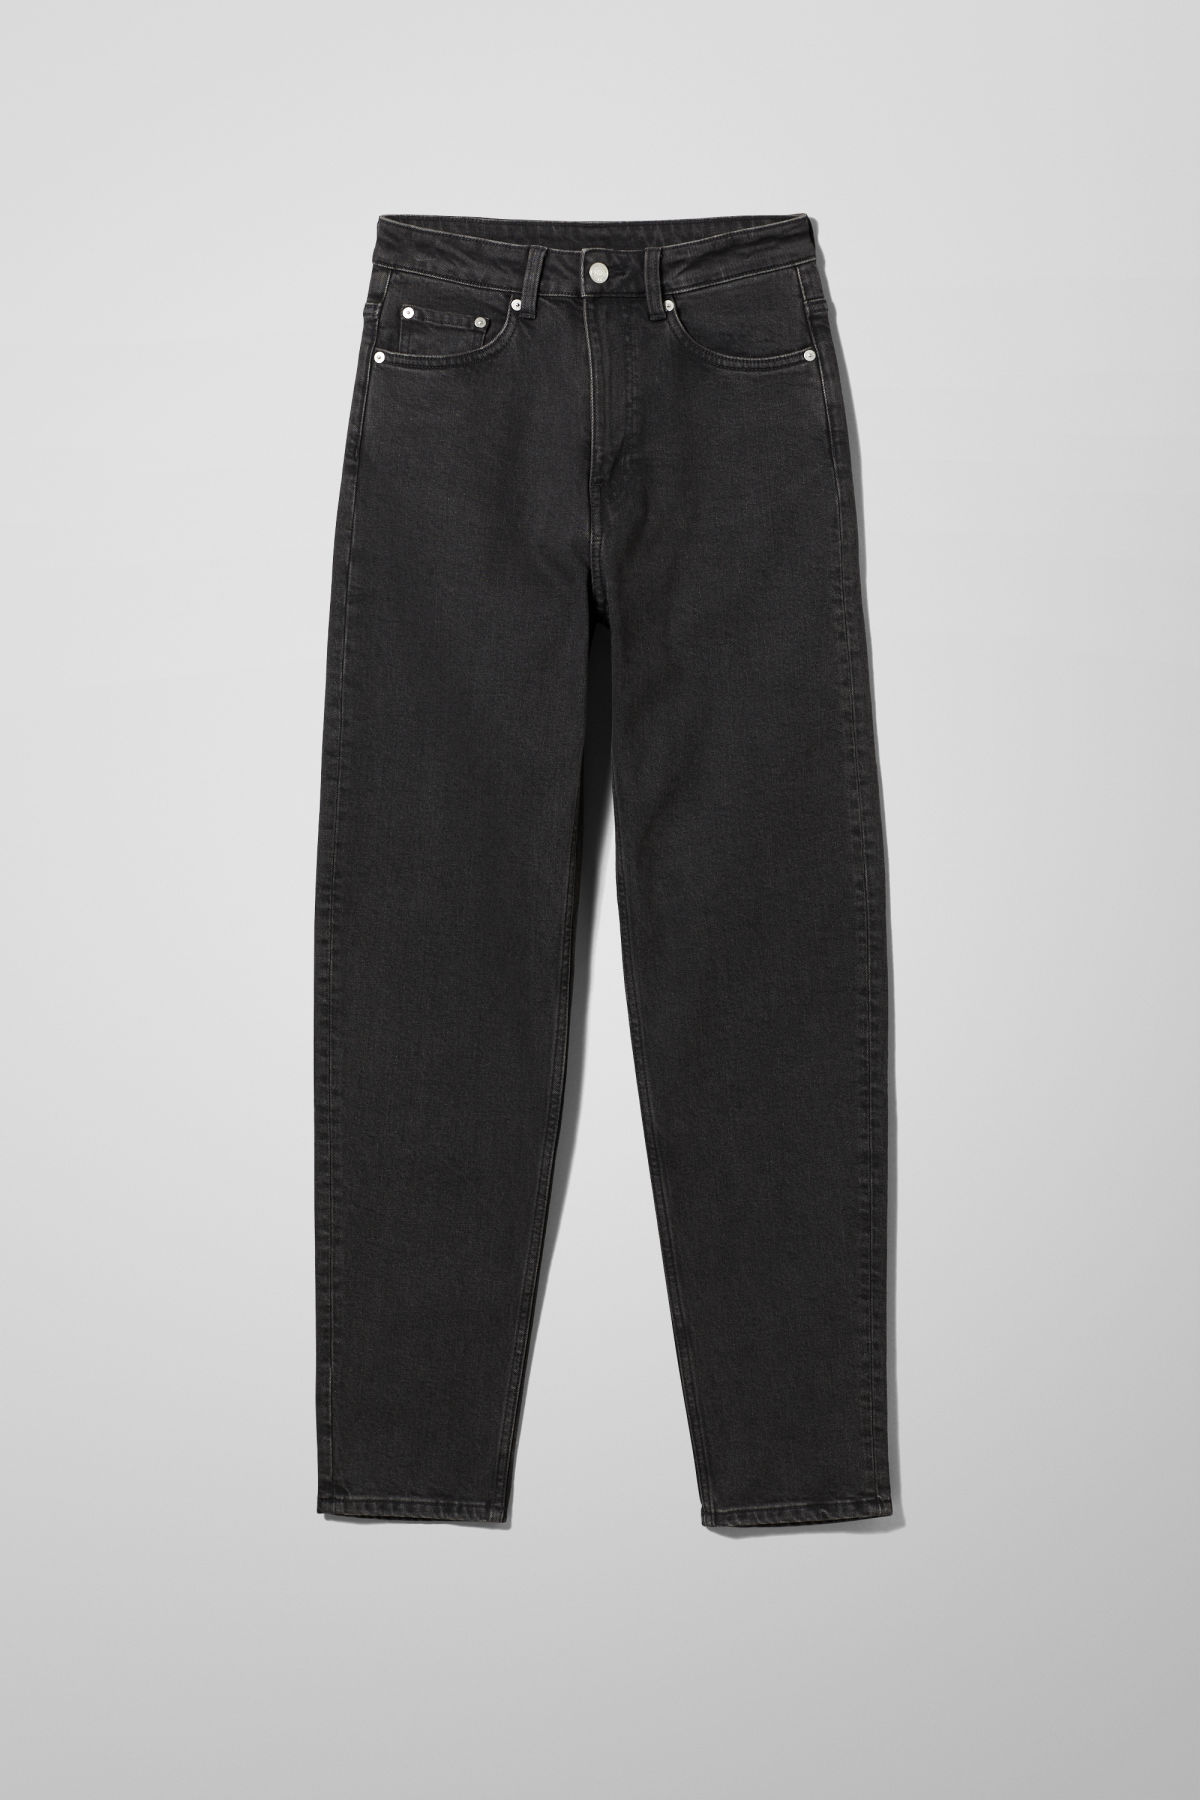 Stillife Front Image of Weekday Lash Extra High Mom Jeans in Black